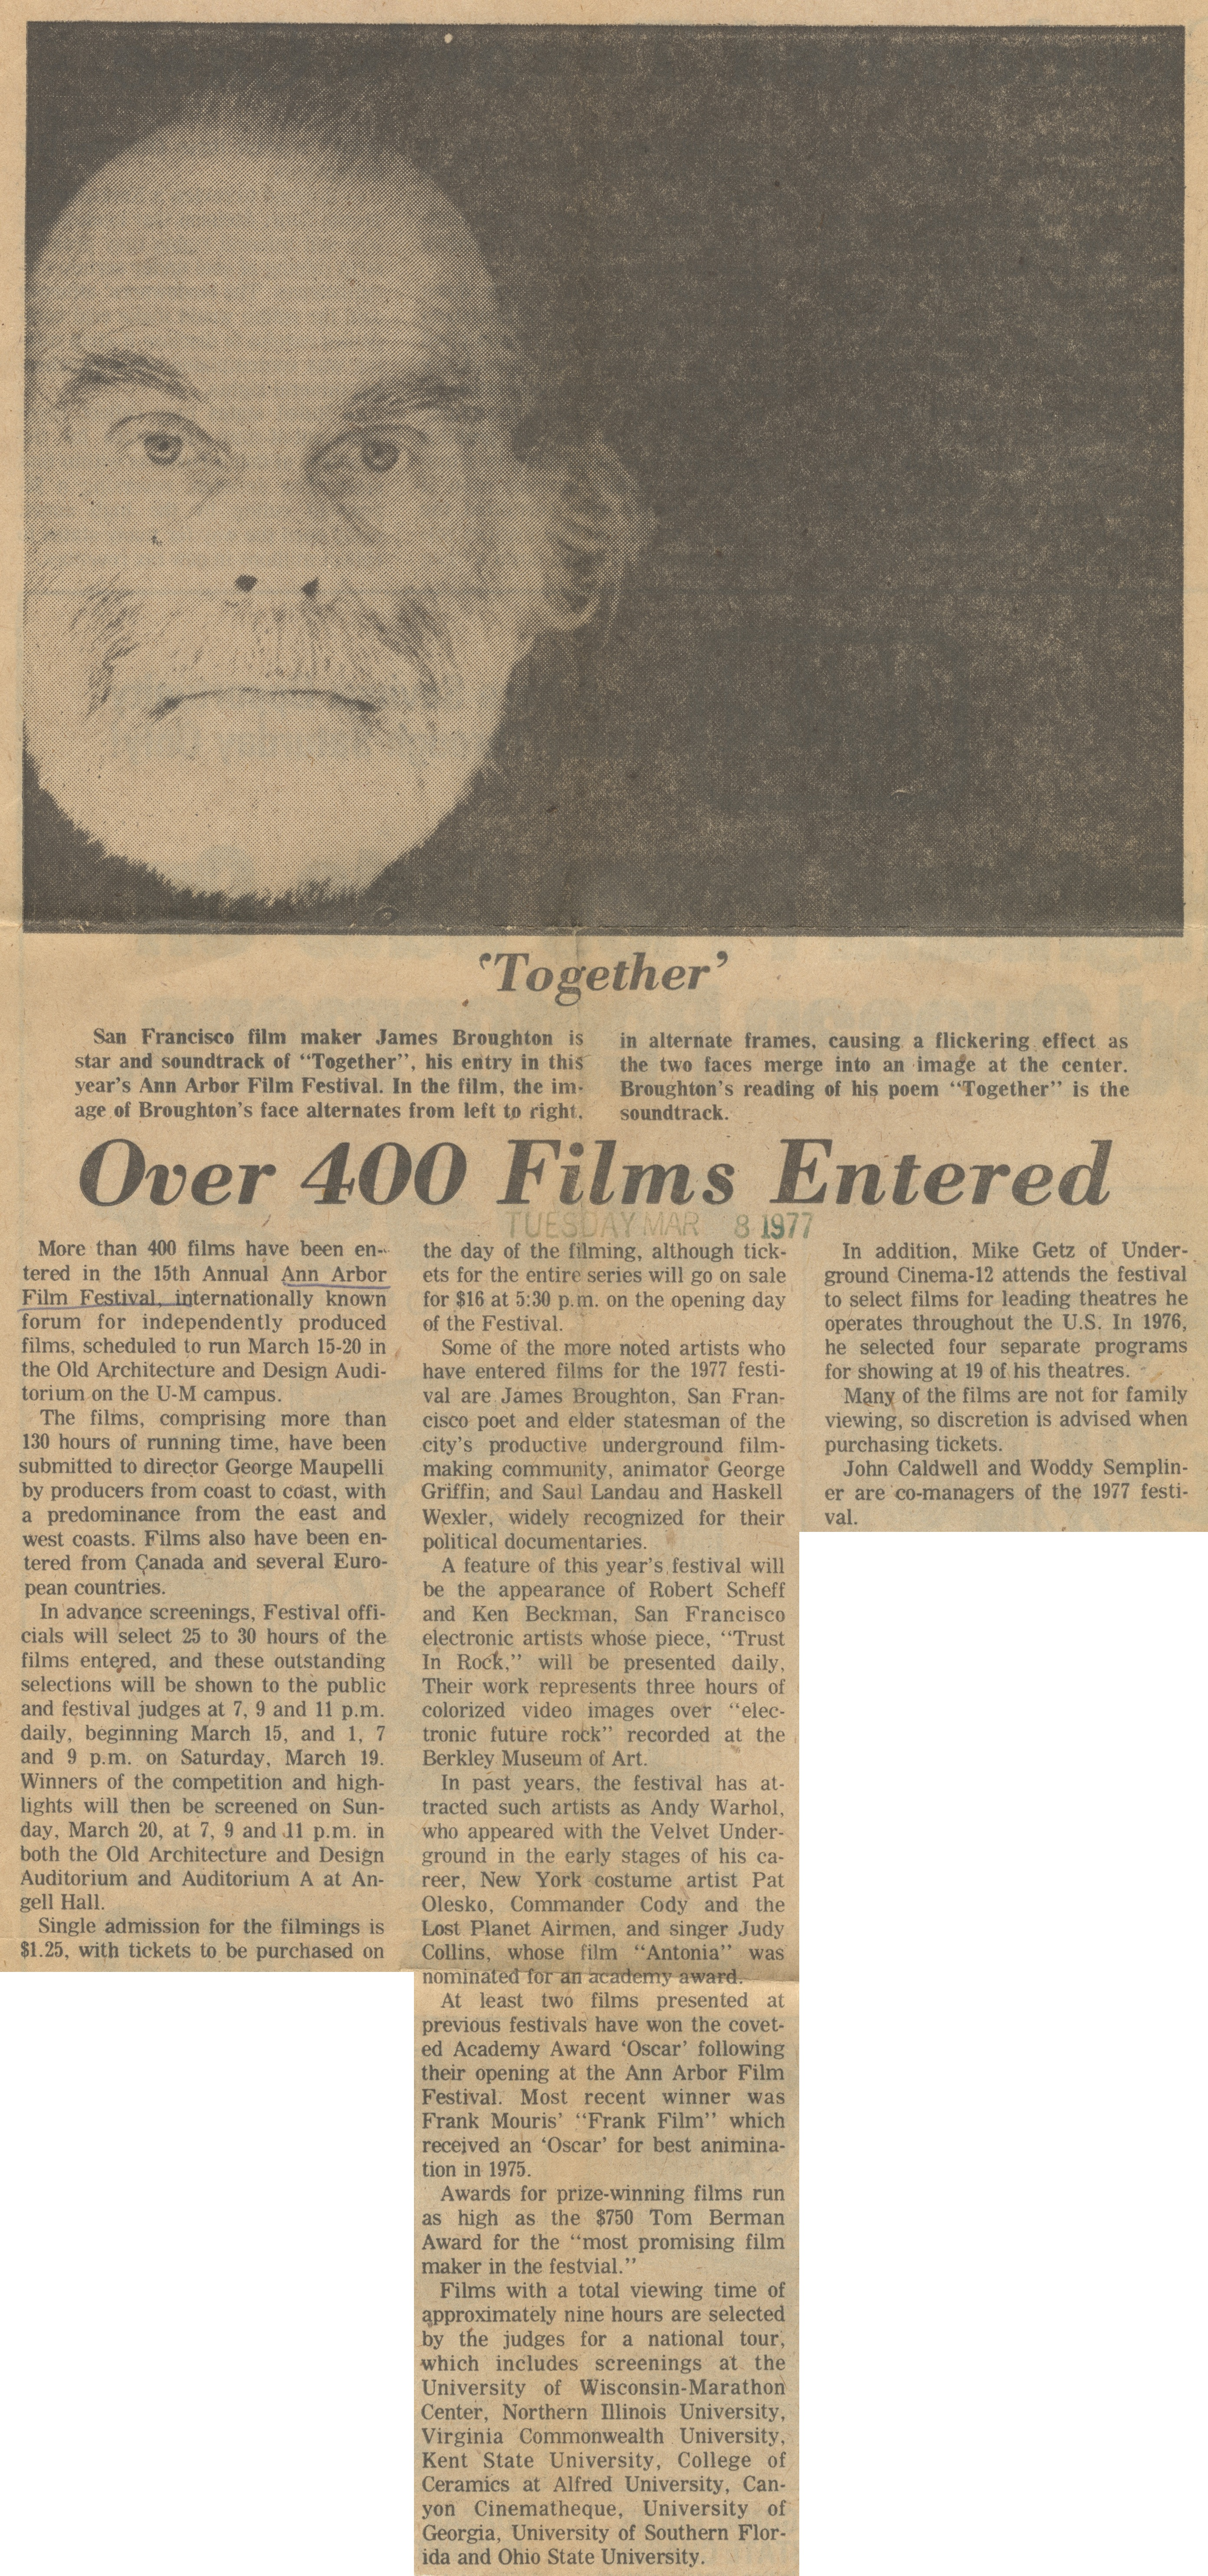 Over 400 Films Entered image